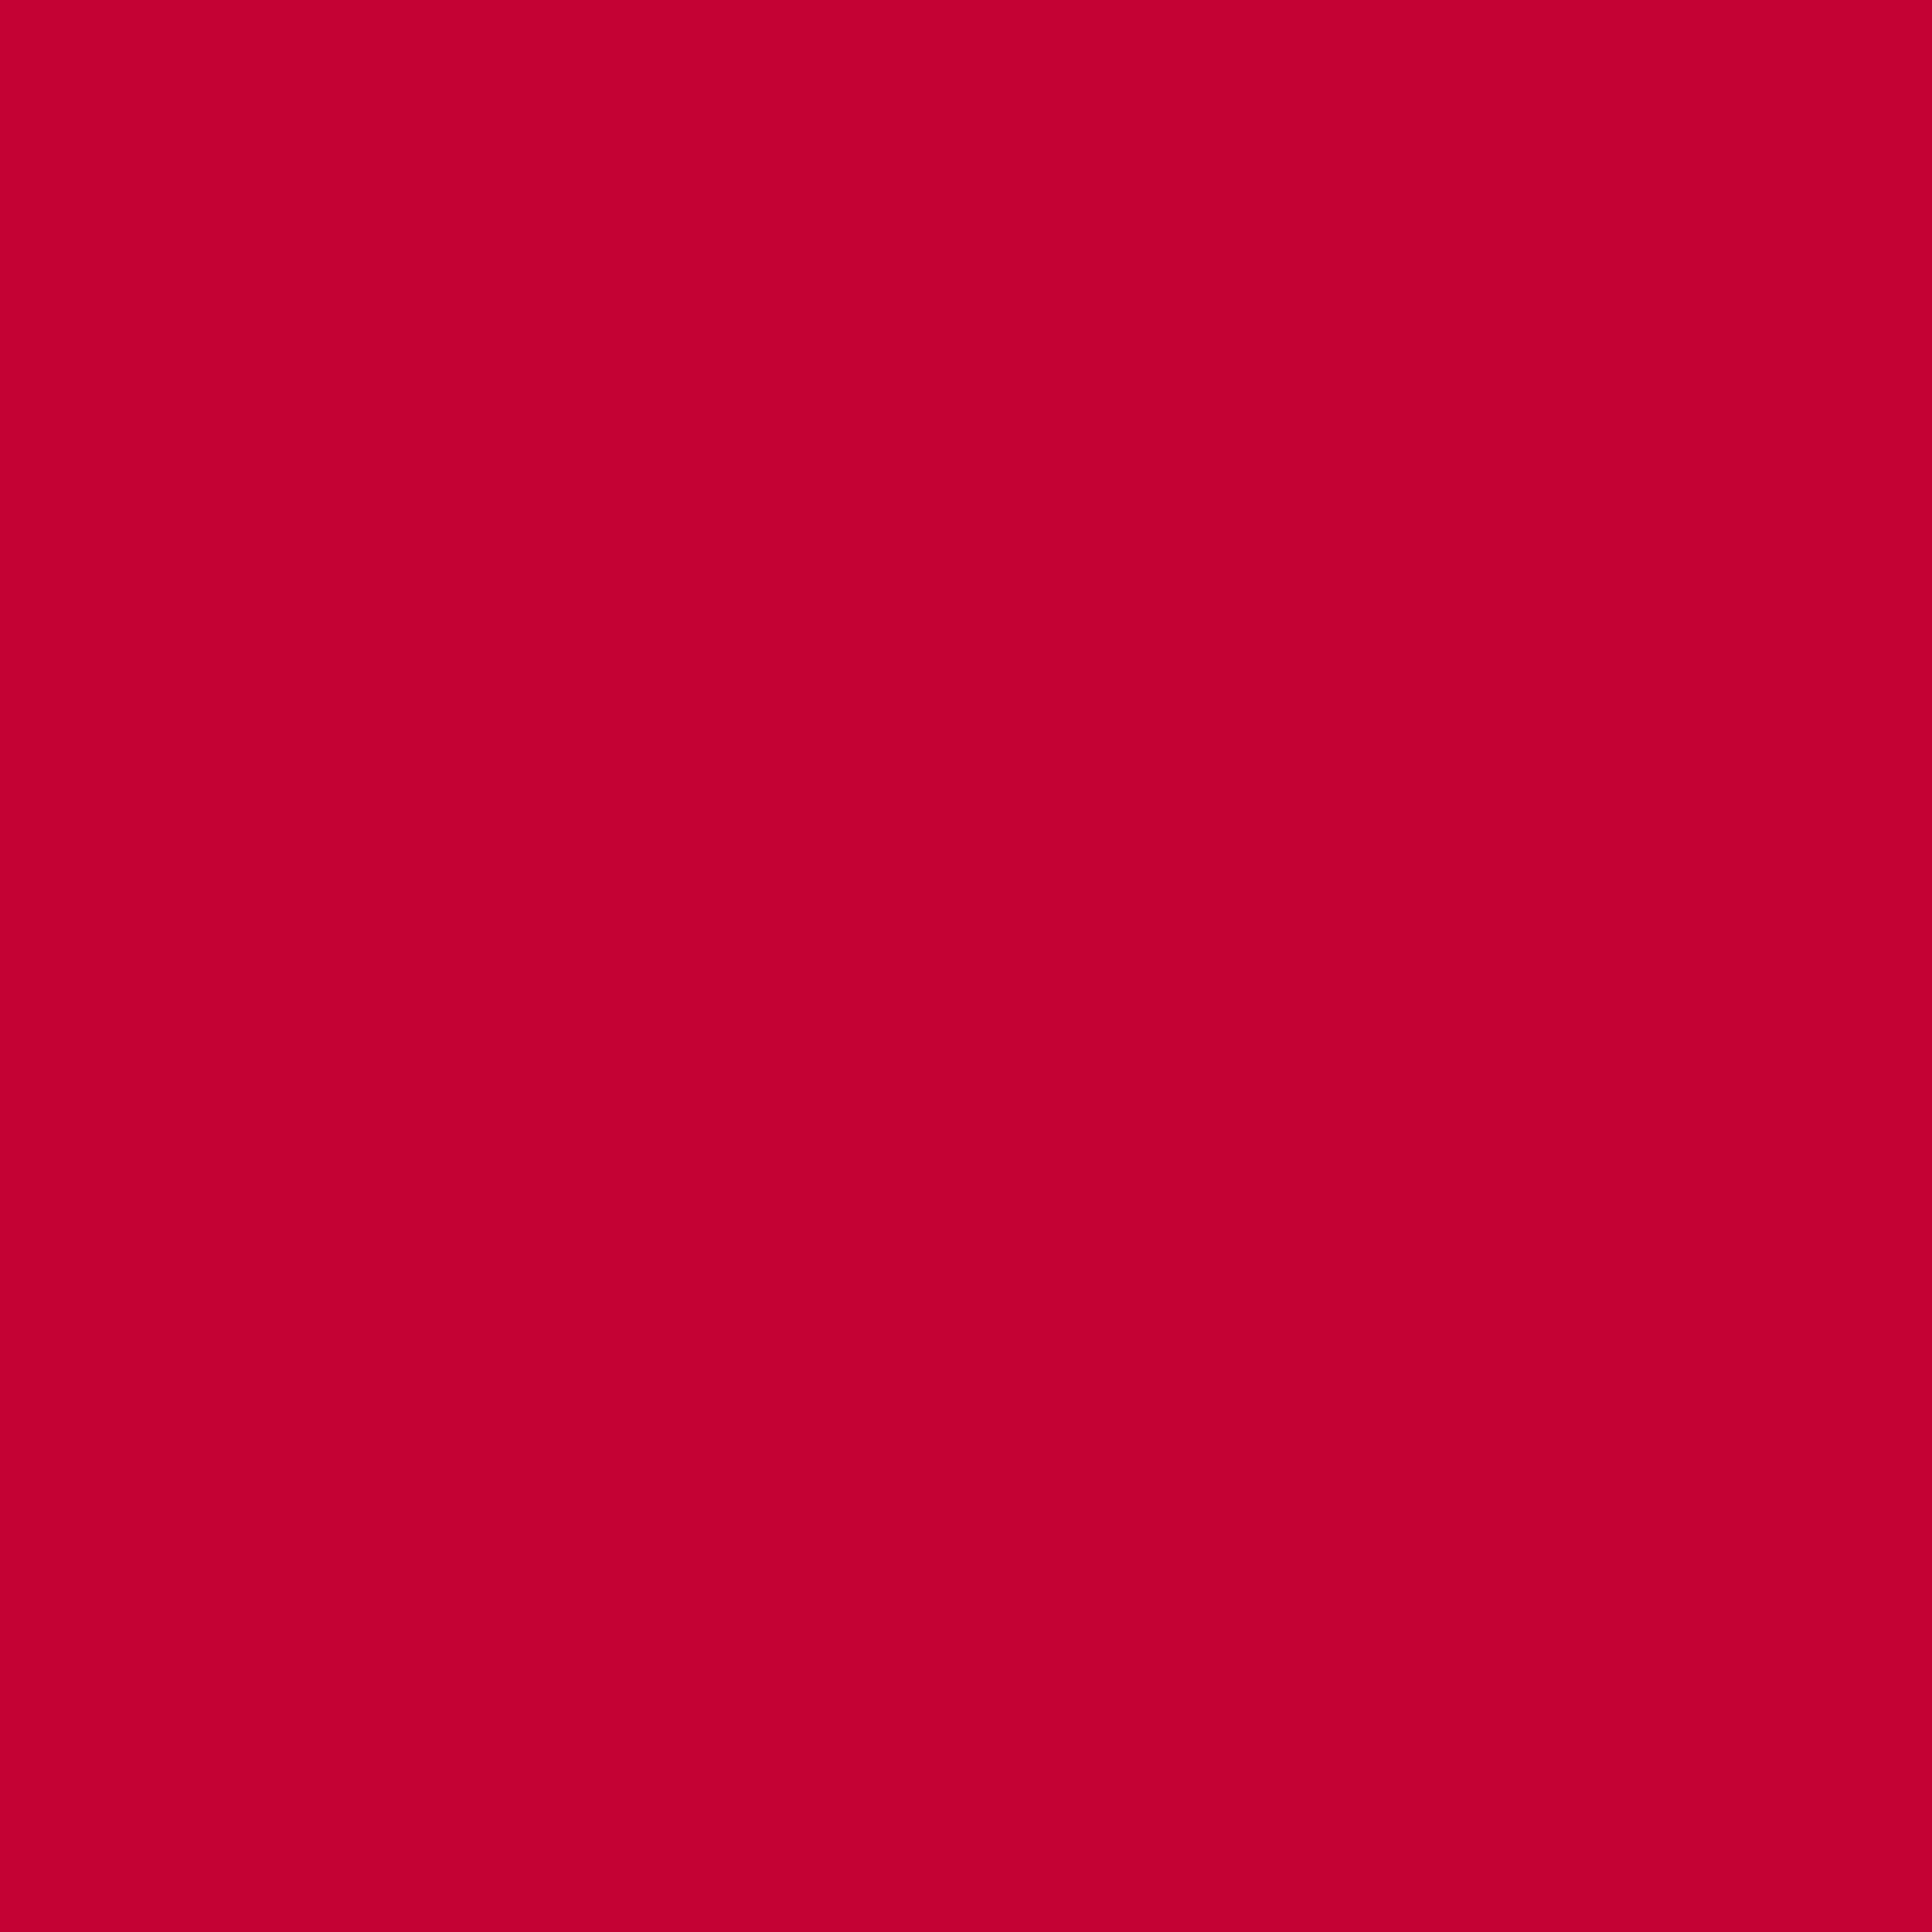 2048x2048 Red NCS Solid Color Background